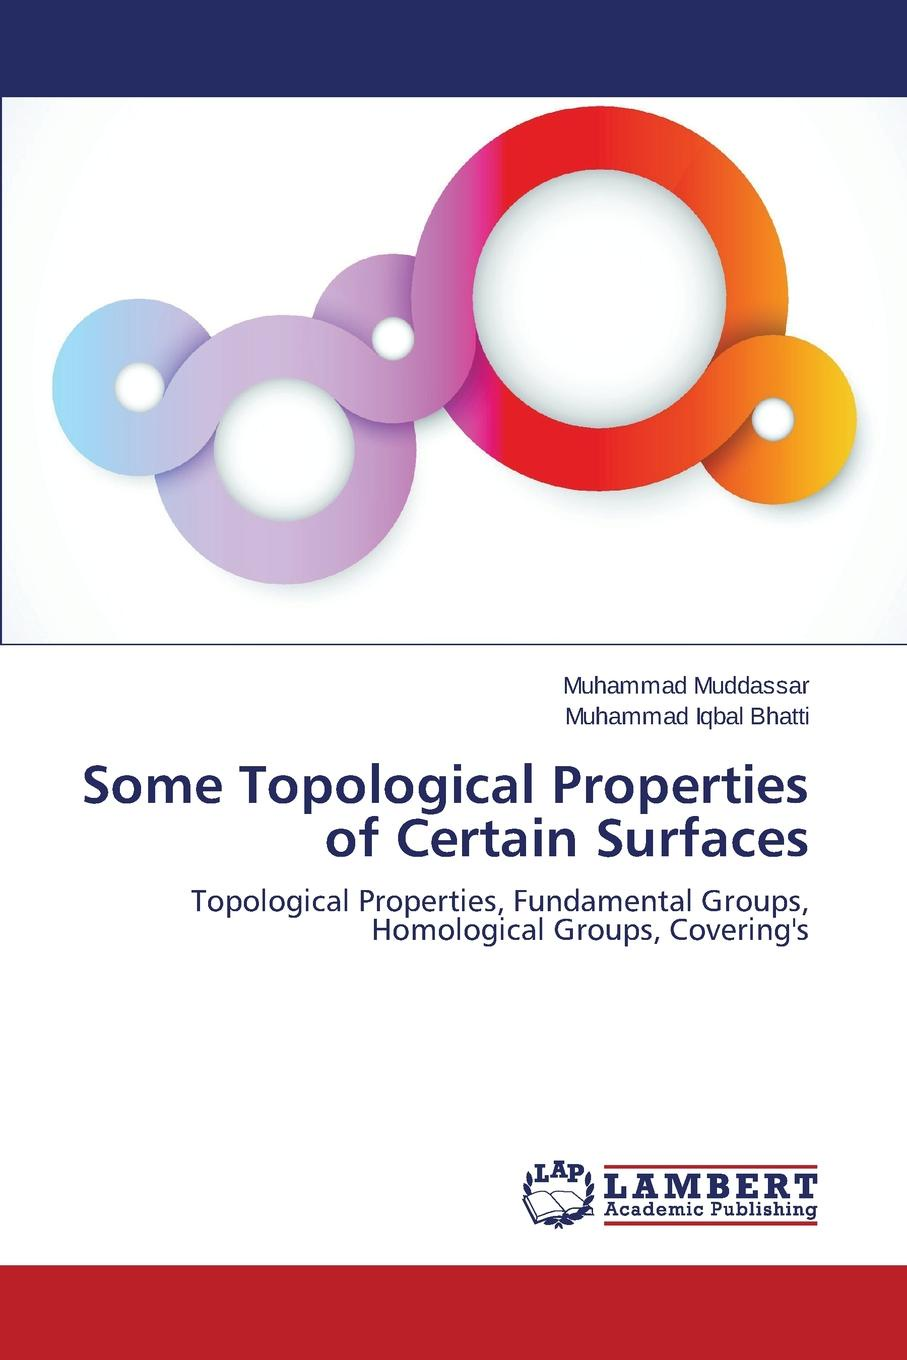 Muddassar Muhammad, Bhatti Muhammad Iqbal Some Topological Properties of Certain Surfaces i philip silverstein the effect of varying humidities upon some physical properties of paper